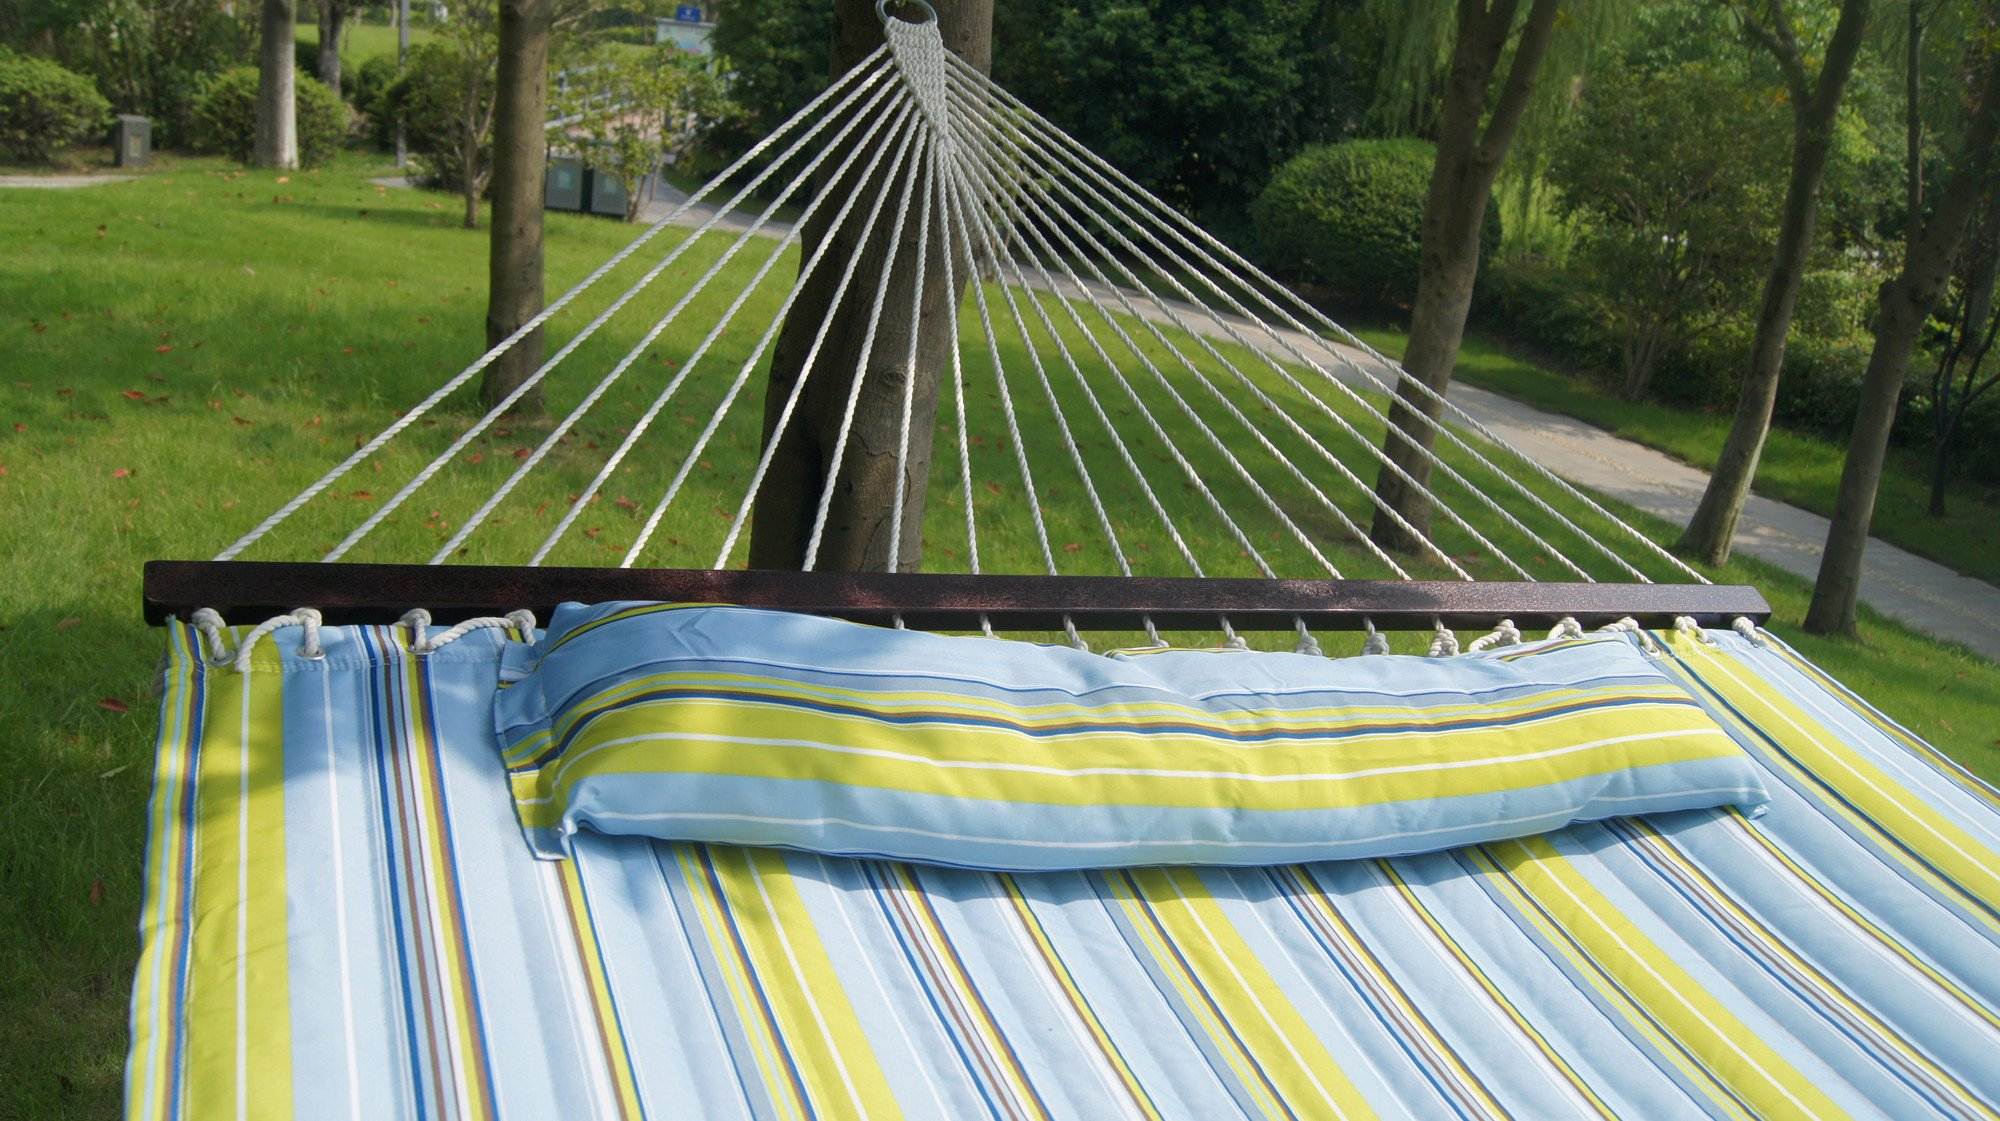 Suesport New Hammock Quilted Fabric With Pillow Double